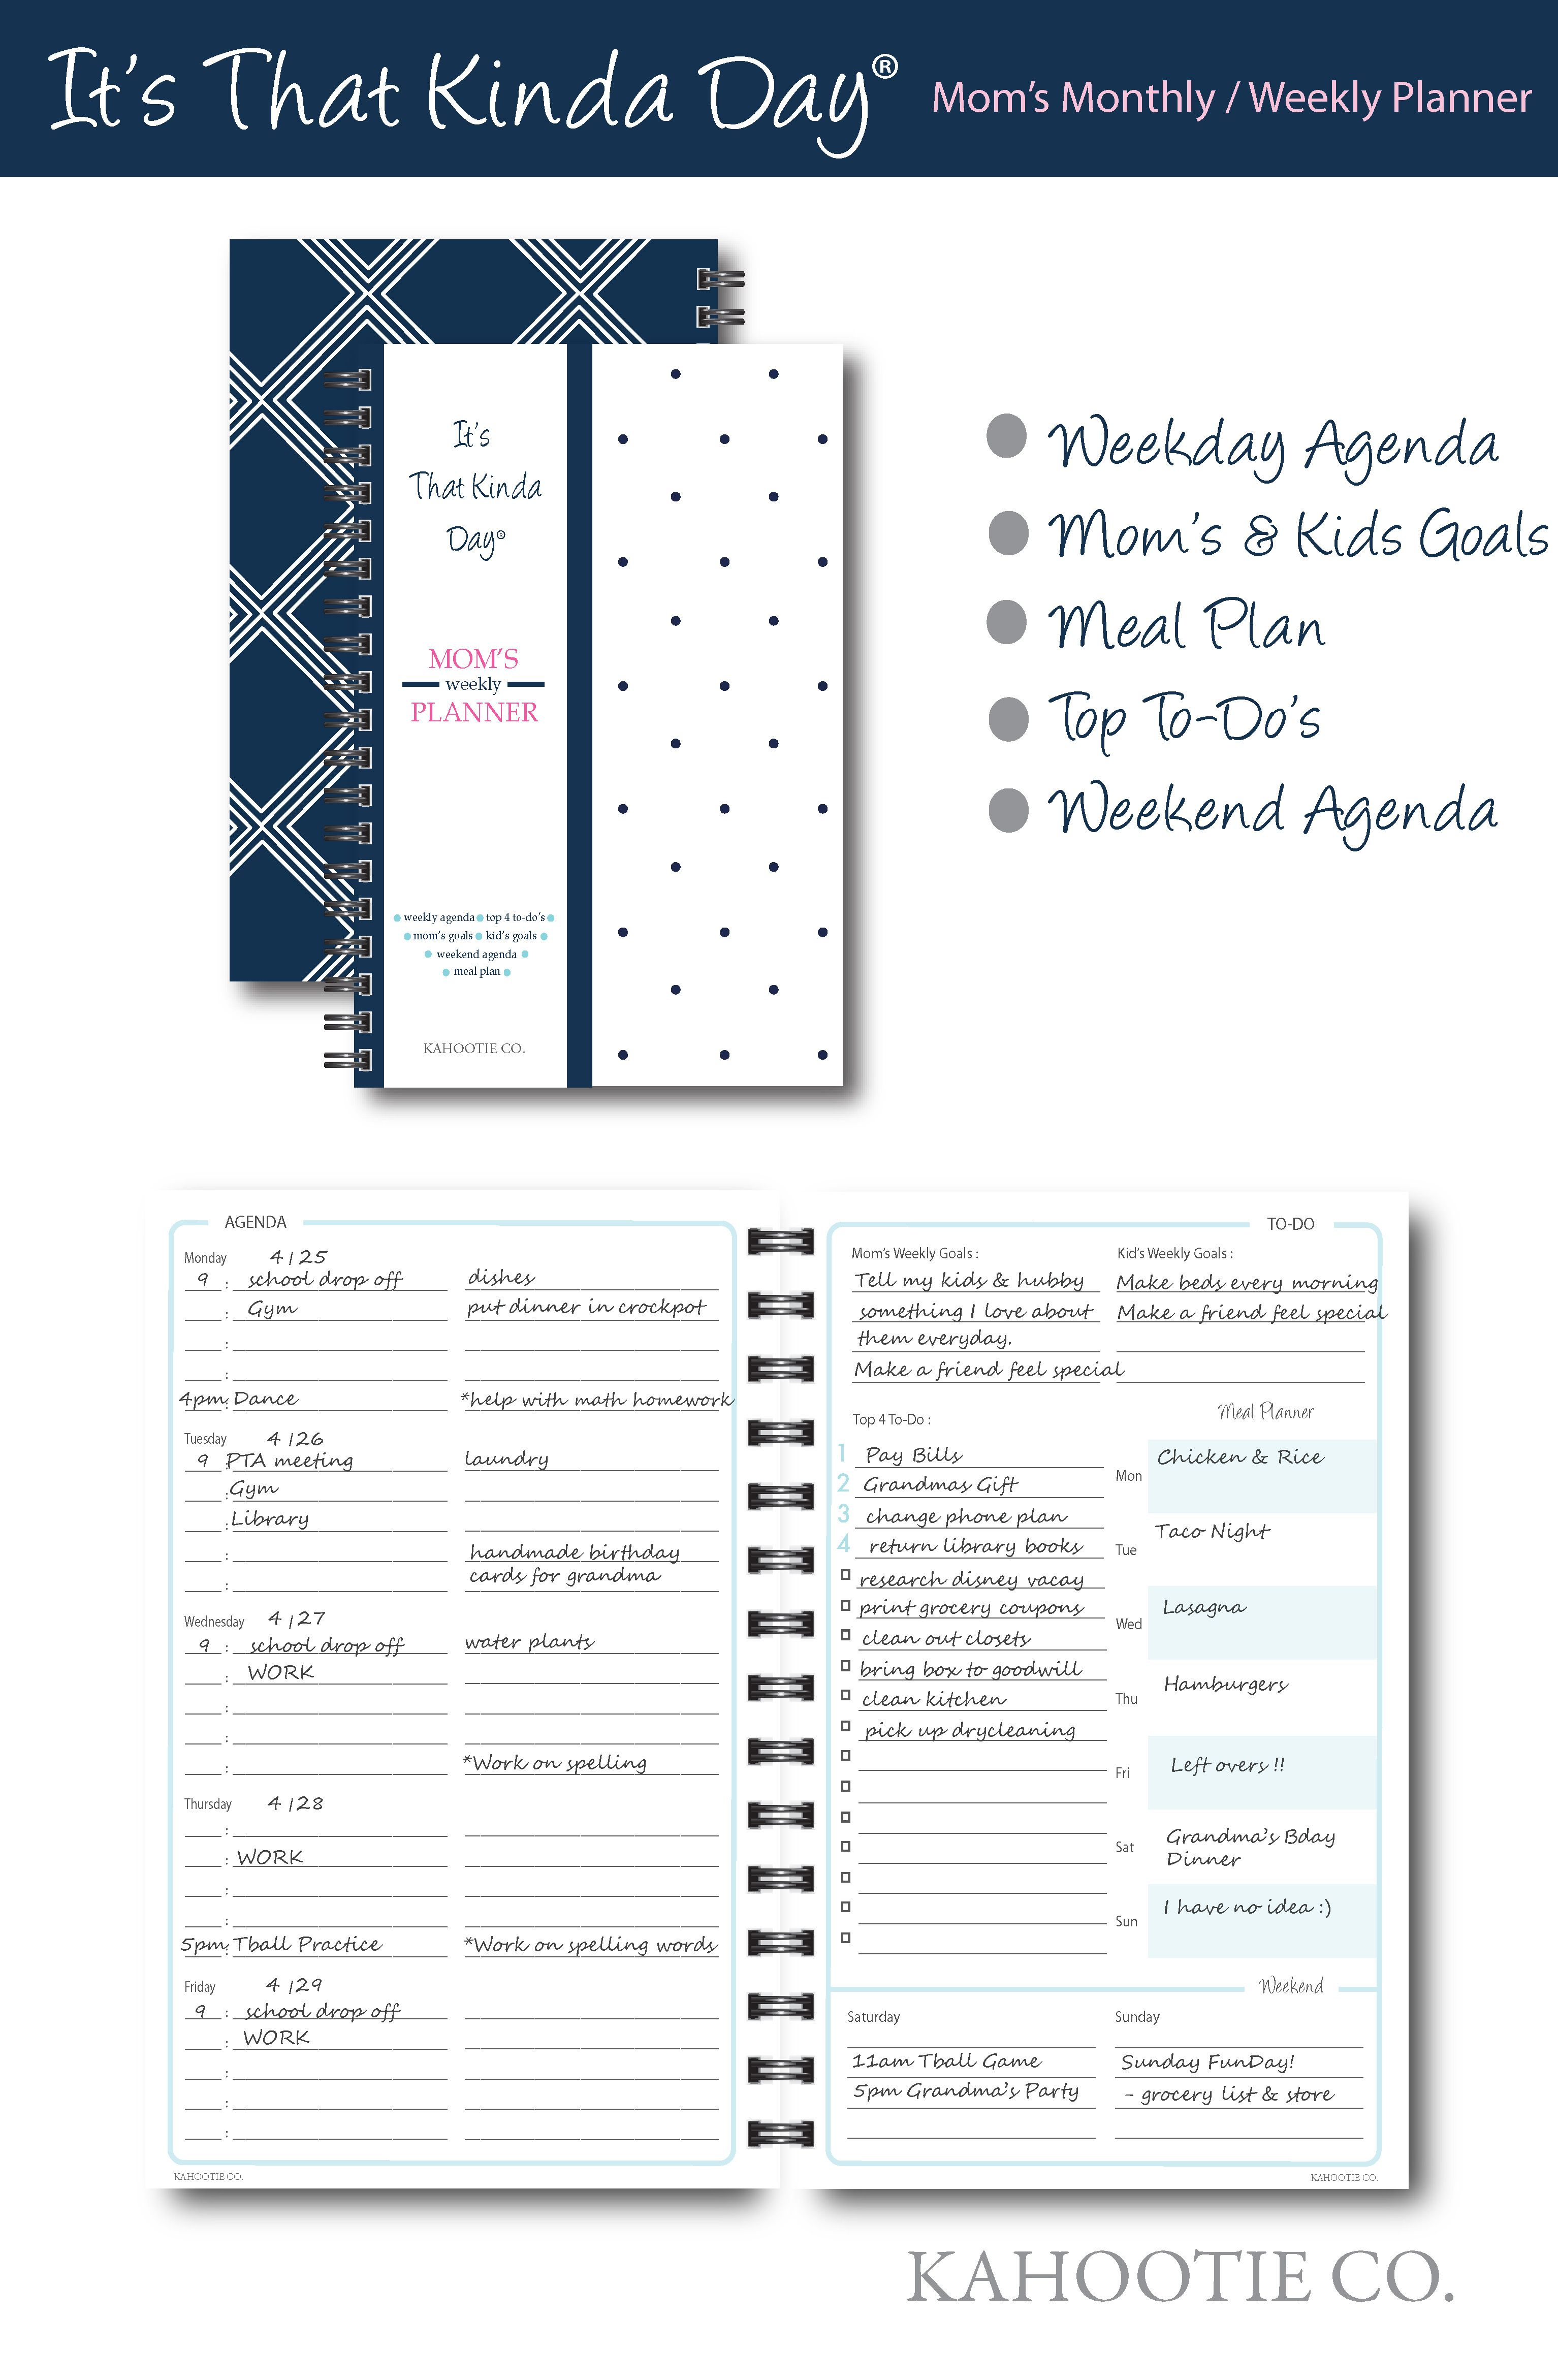 Kahootie Co It S That Kinda Day Mom S Weekly Planner 6 X 9 Navy And White Itkmnw At Staples Weekly Planner Mom Planner Planner